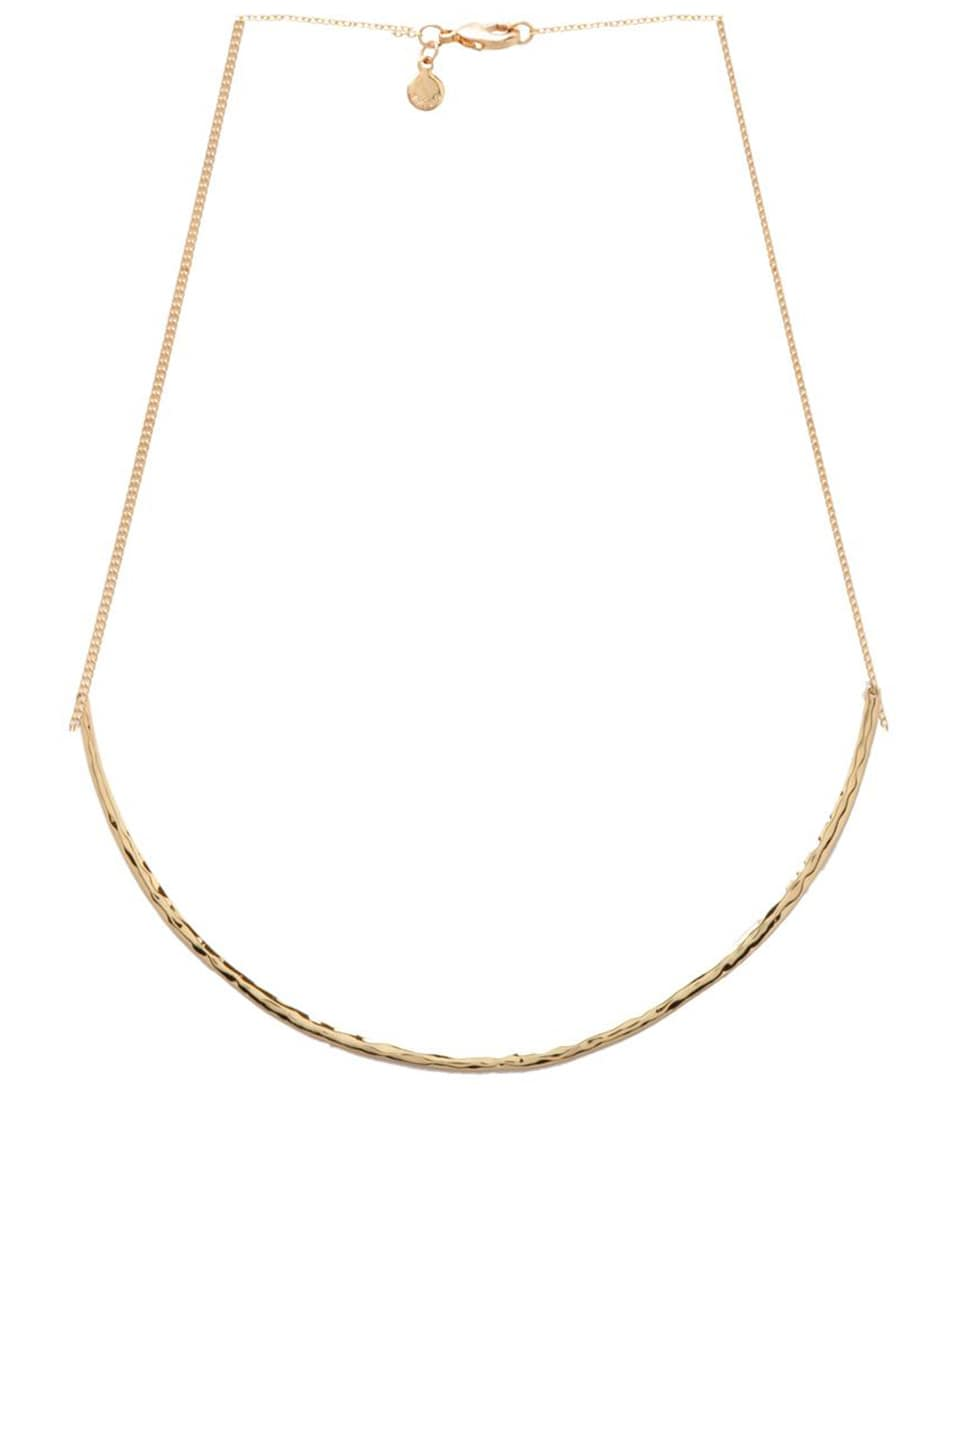 gorjana Taner Collar Necklace in Gold